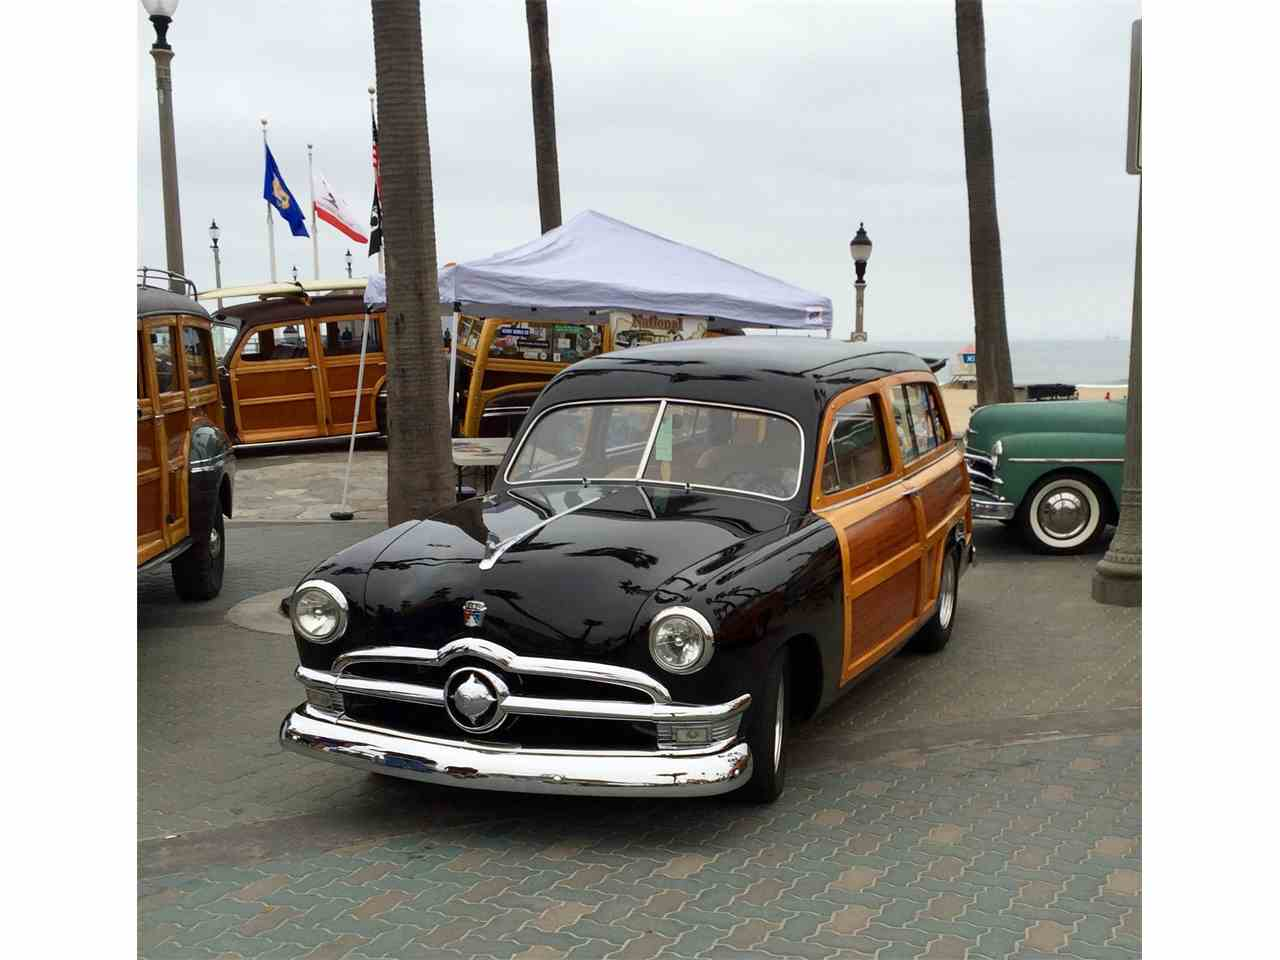 Large Picture of Classic '50 Ford Woody Wagon located in Tustin California - $119,000.00 Offered by a Private Seller - NDEI